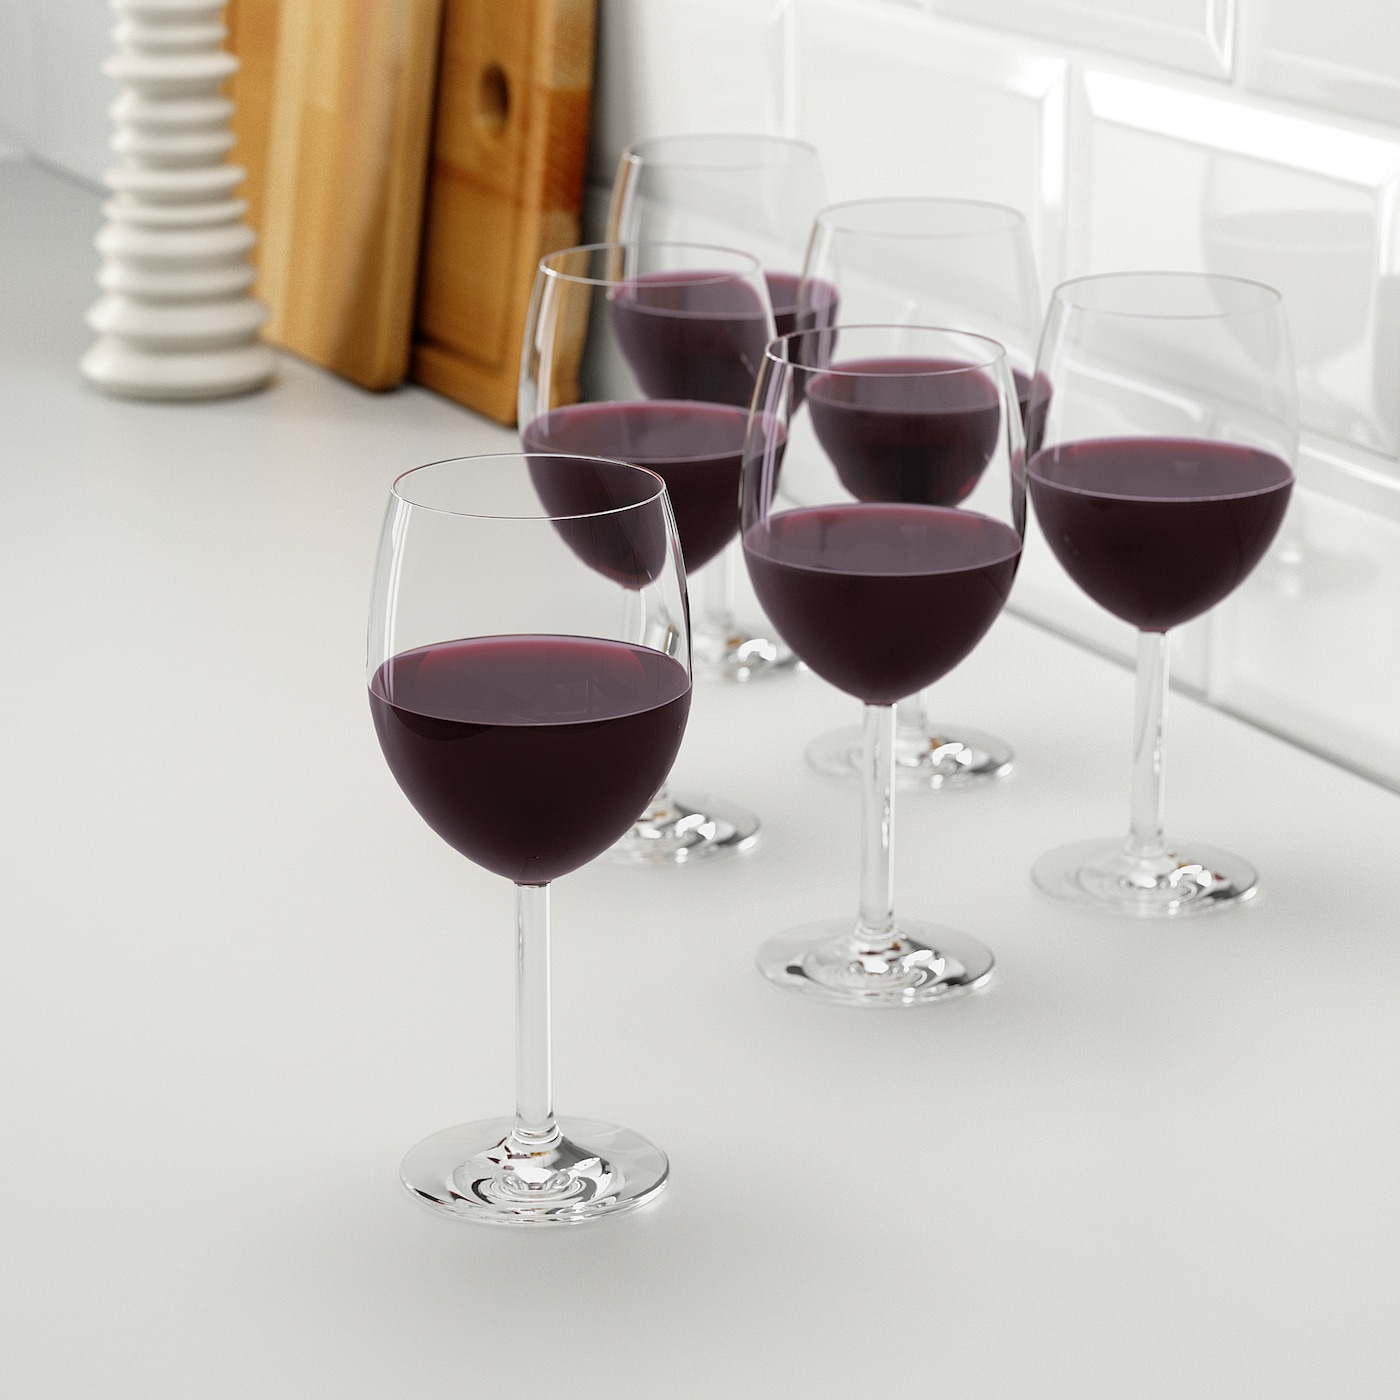 IKEA Svalka SET OF 6  Red Wine Glasses For Home Bar Art /& Craft  30 cl